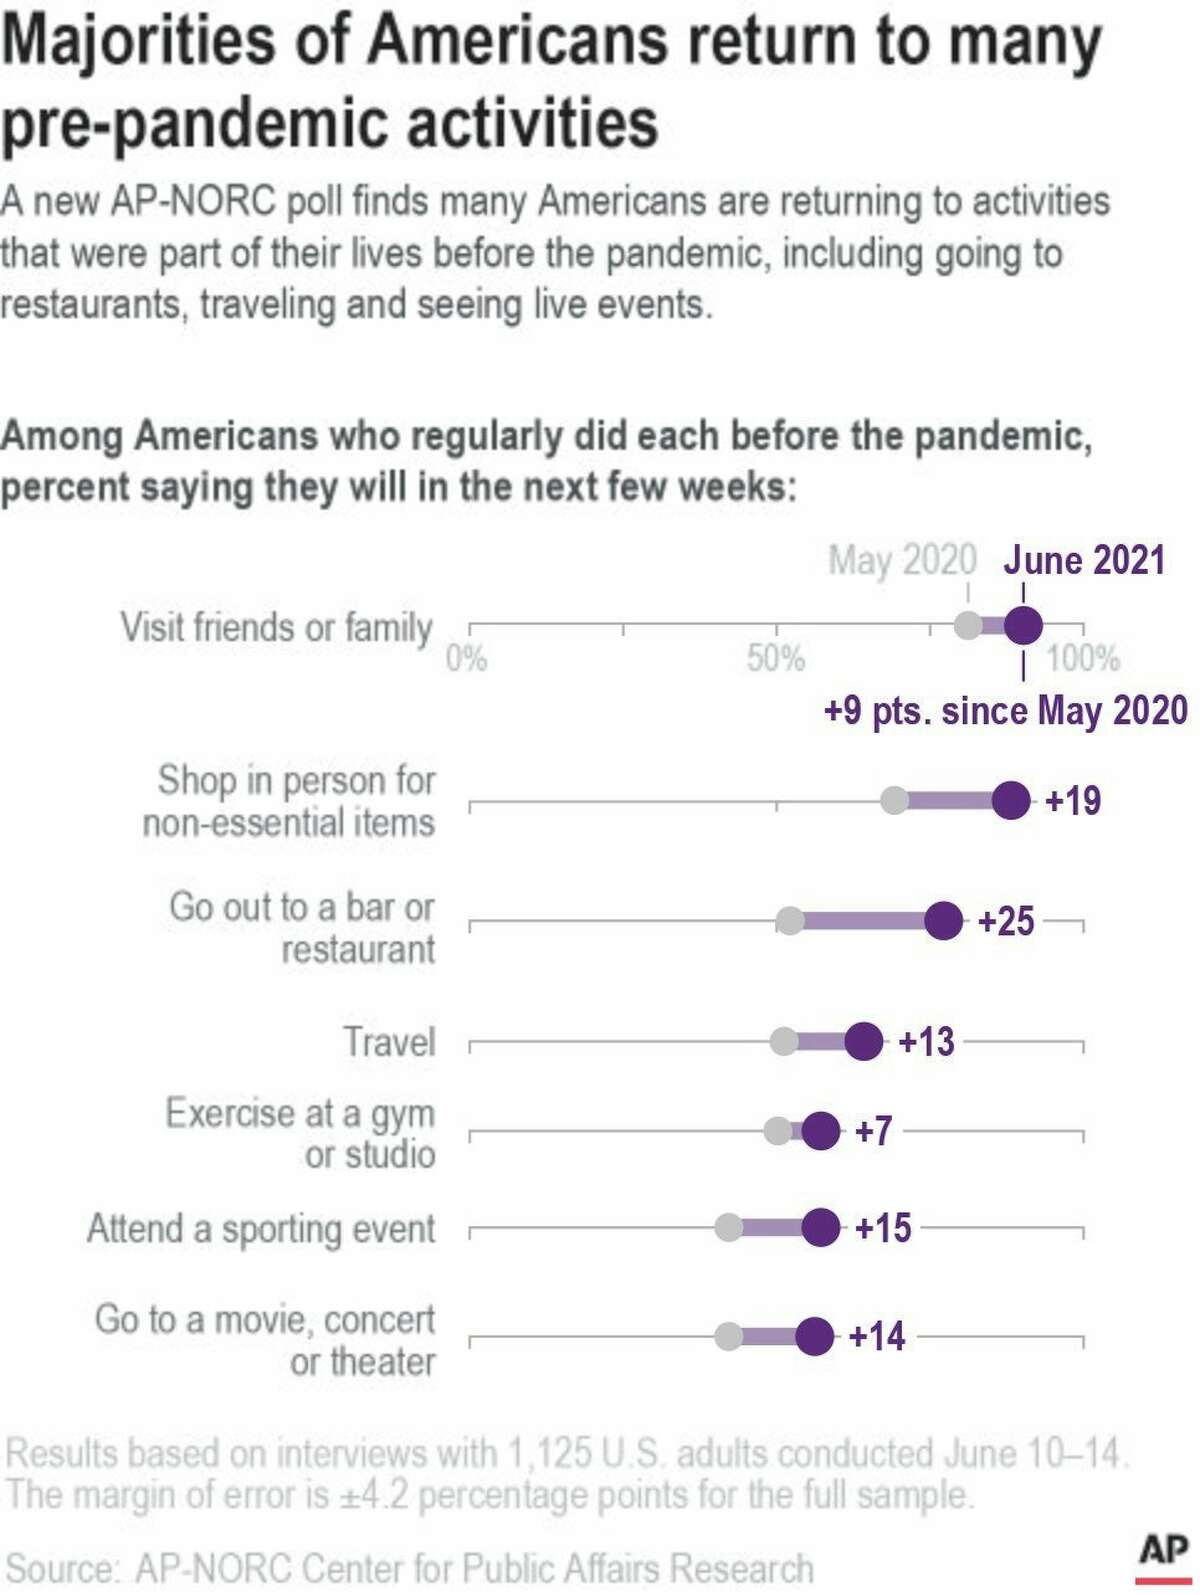 A new AP-NORC poll finds that after a drop in participation in pre-pandemic activities, Americans are more likely to say now than in May 2020 that they will attend sporting events, travel and exercise at a gym or studio. (AP graphic)